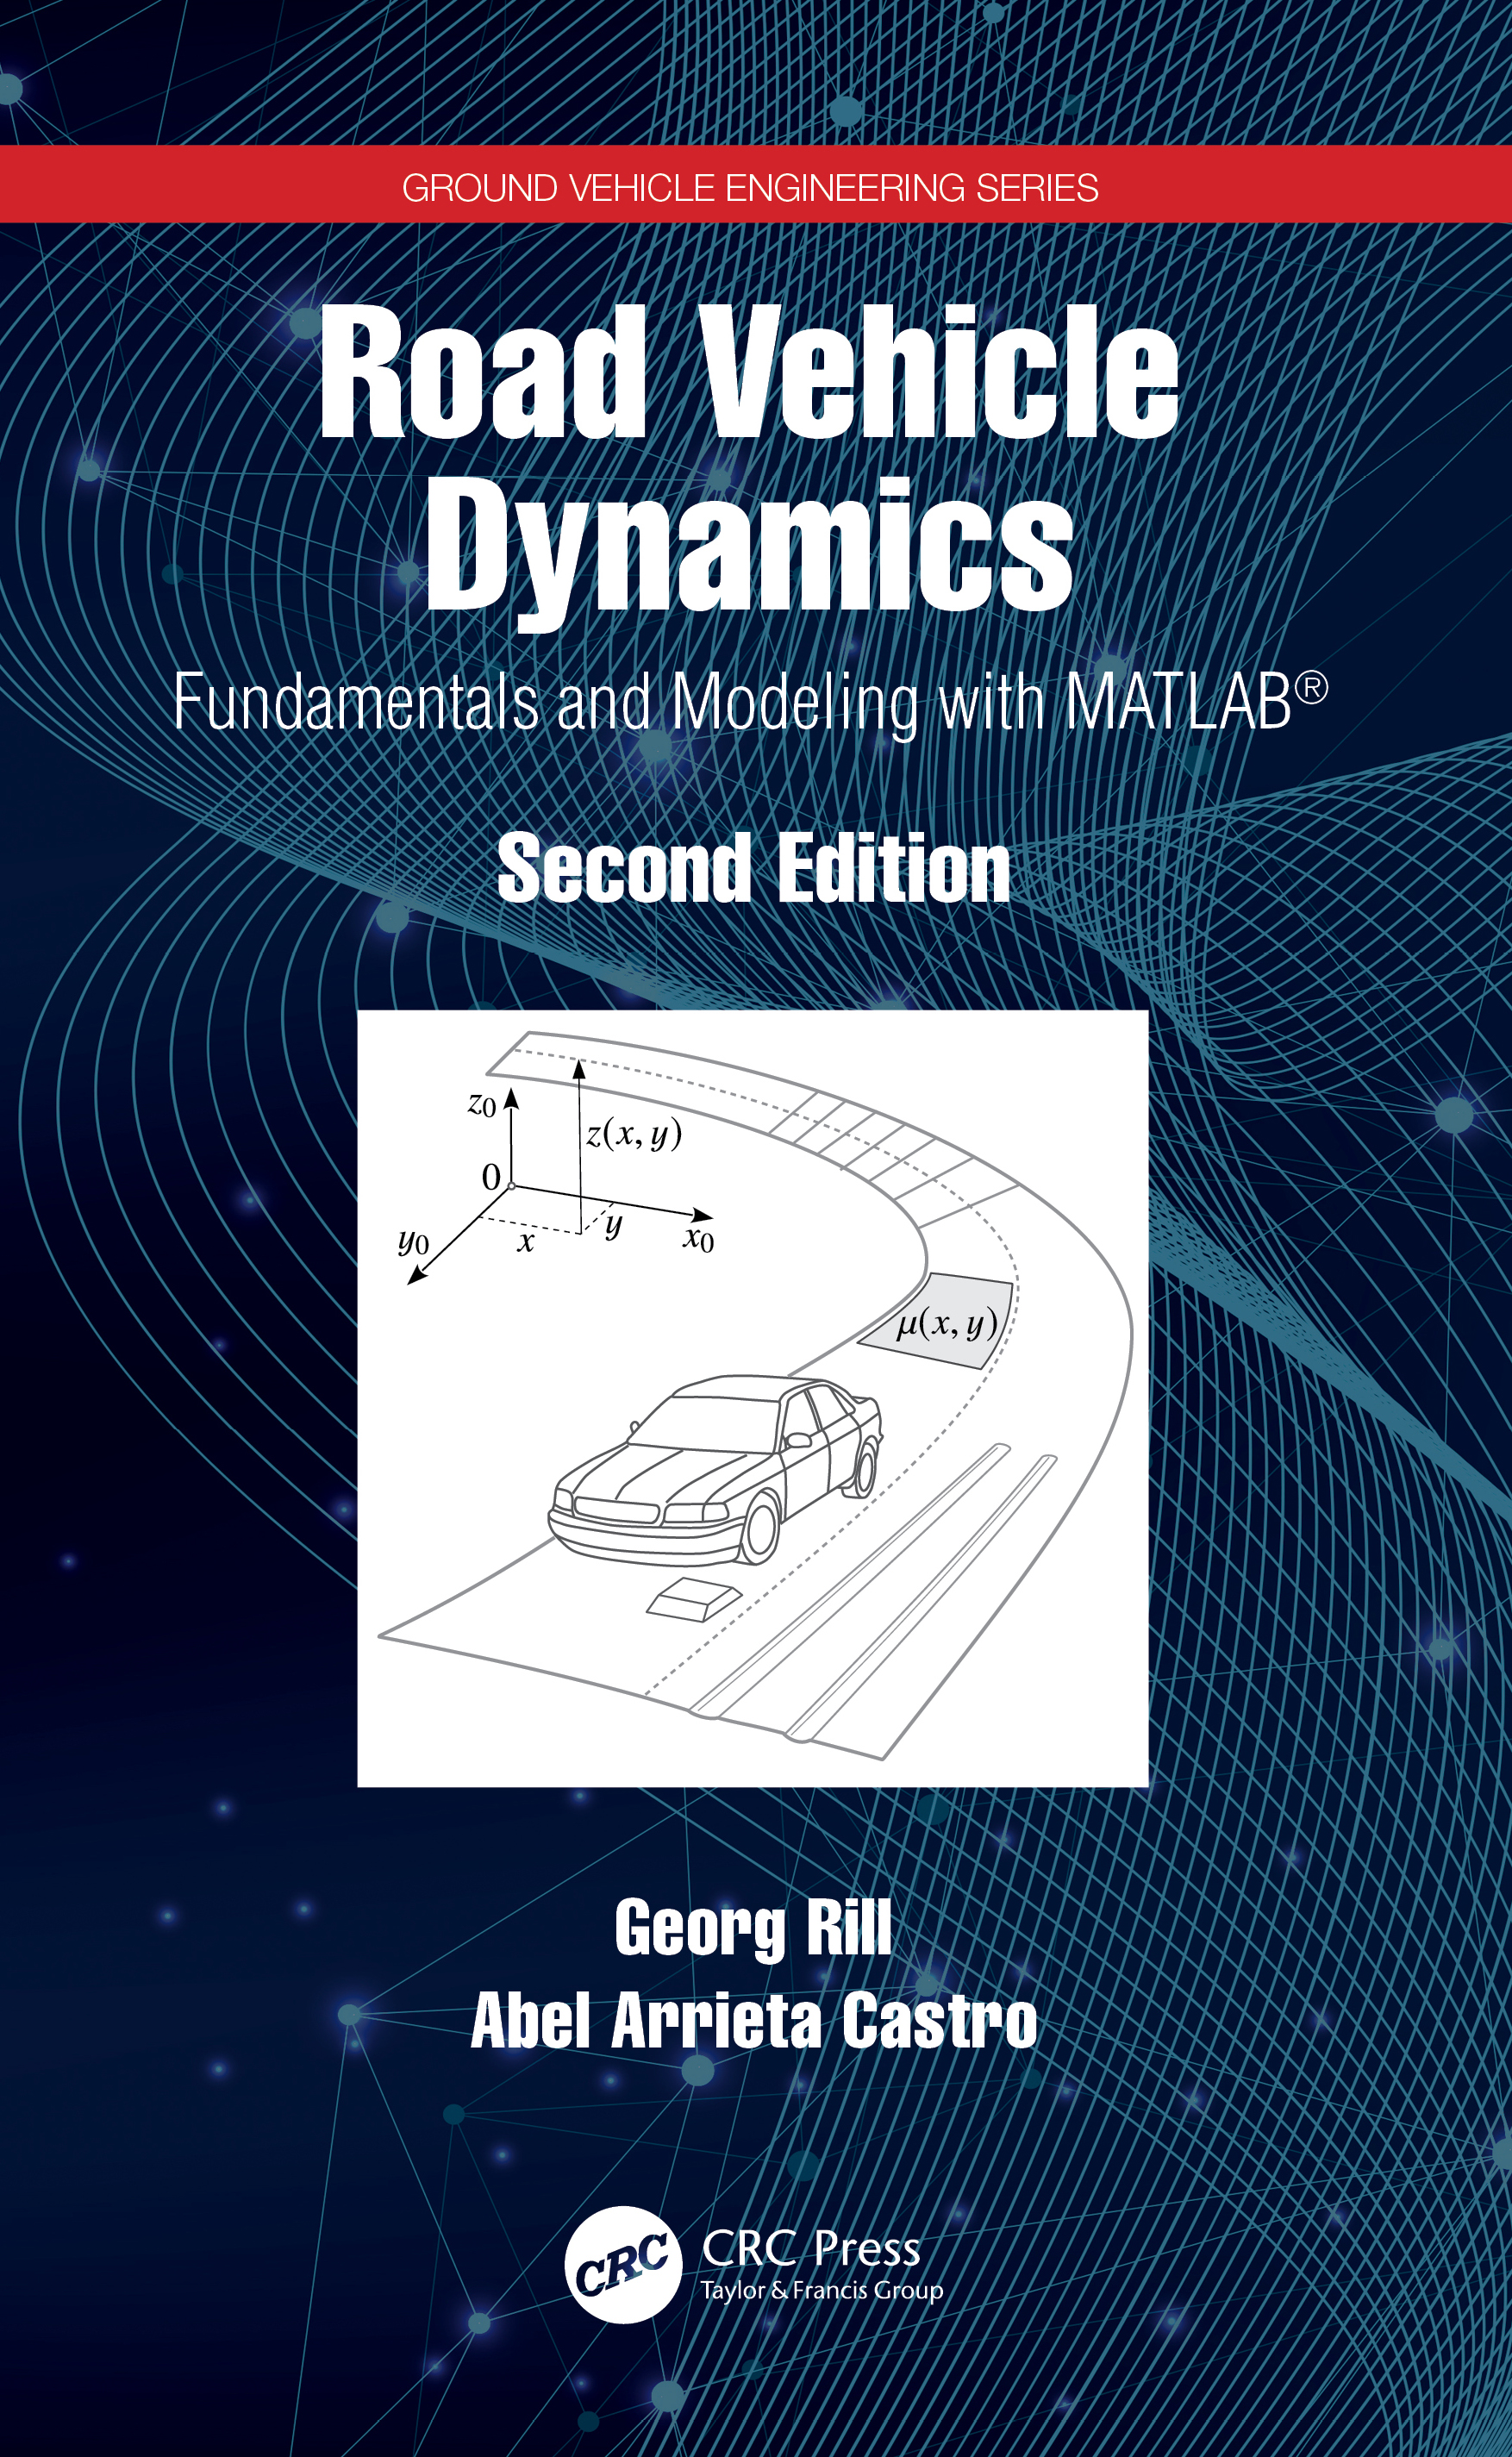 Road Vehicle Dynamics: Fundamentals and Modeling with MATLAB® book cover